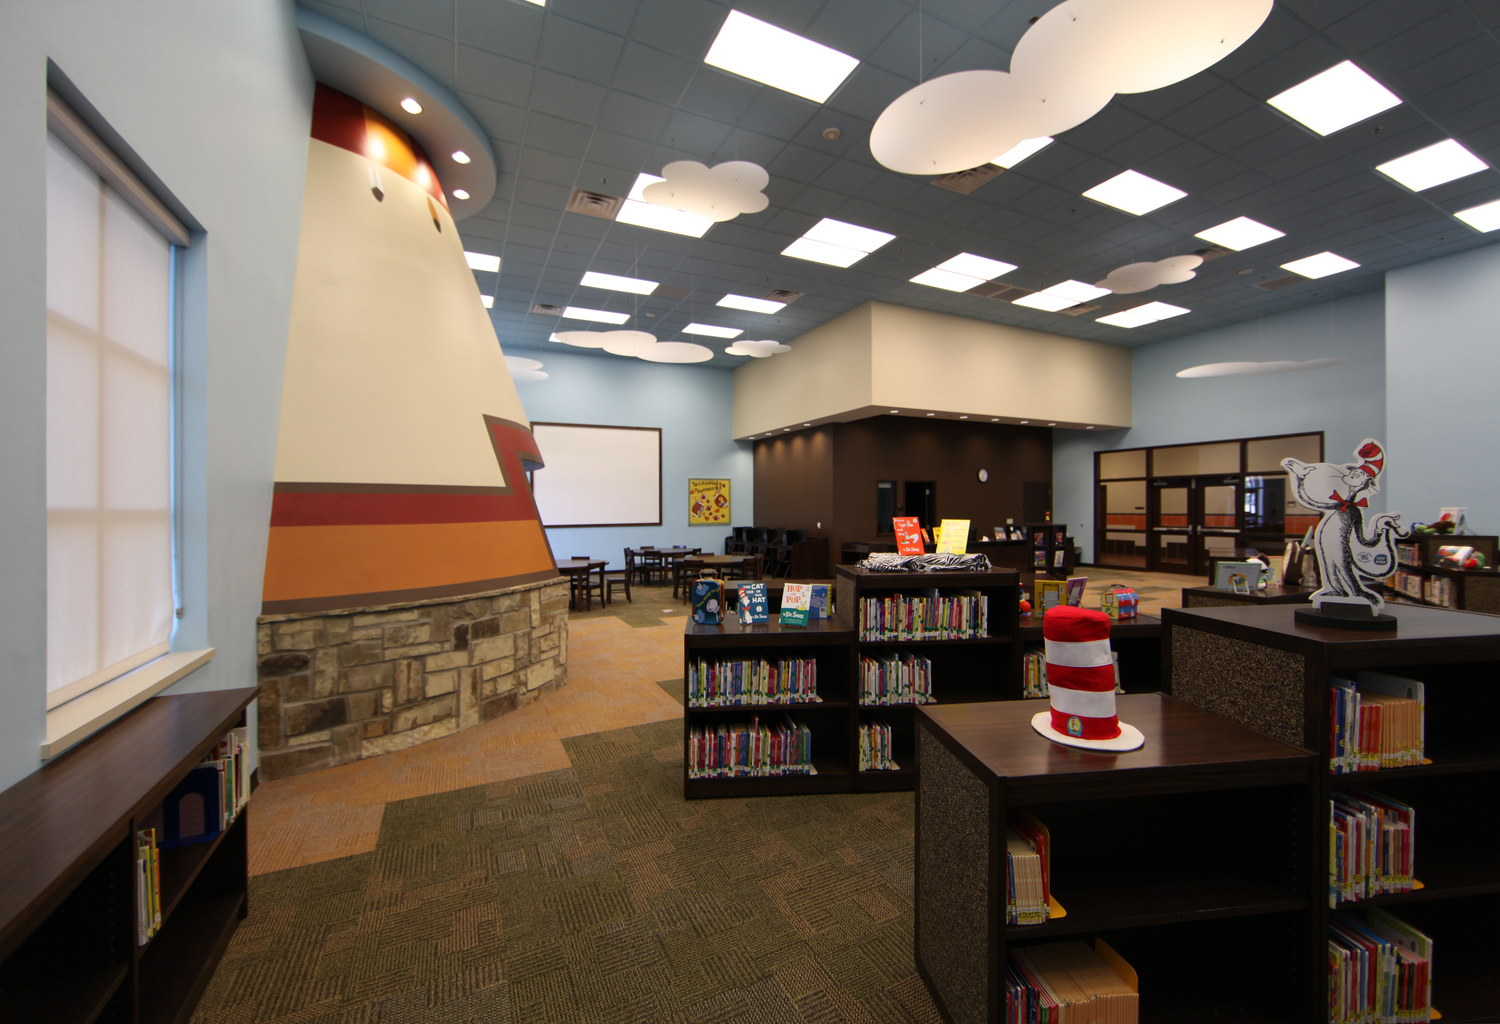 grand saline isd - rural school district architect - east texas educational designer - butler architectural group